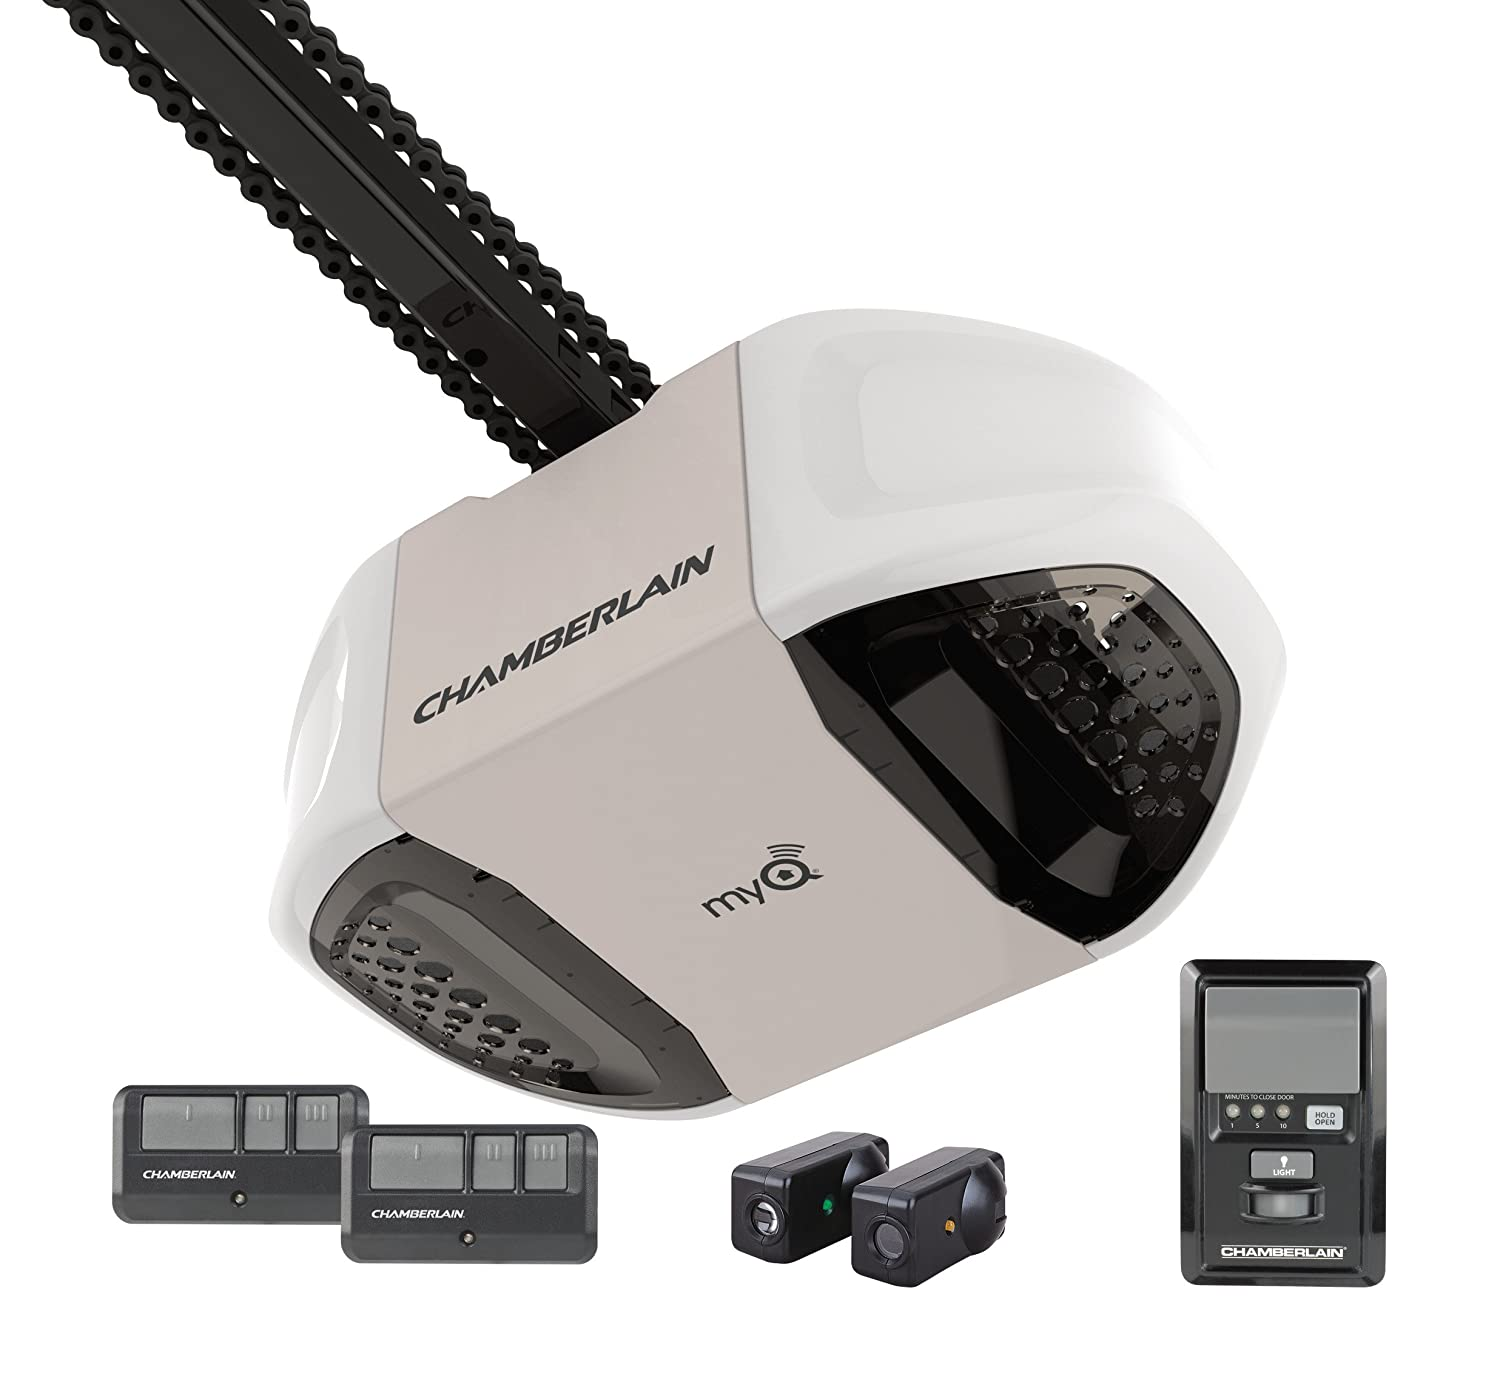 Chamberlain pd762ev garage door opener hp durable chain drive chamberlain pd762ev garage door opener hp durable chain drive operation myq smartphone control enabled internet gateway sold separately includes 2 3 rubansaba